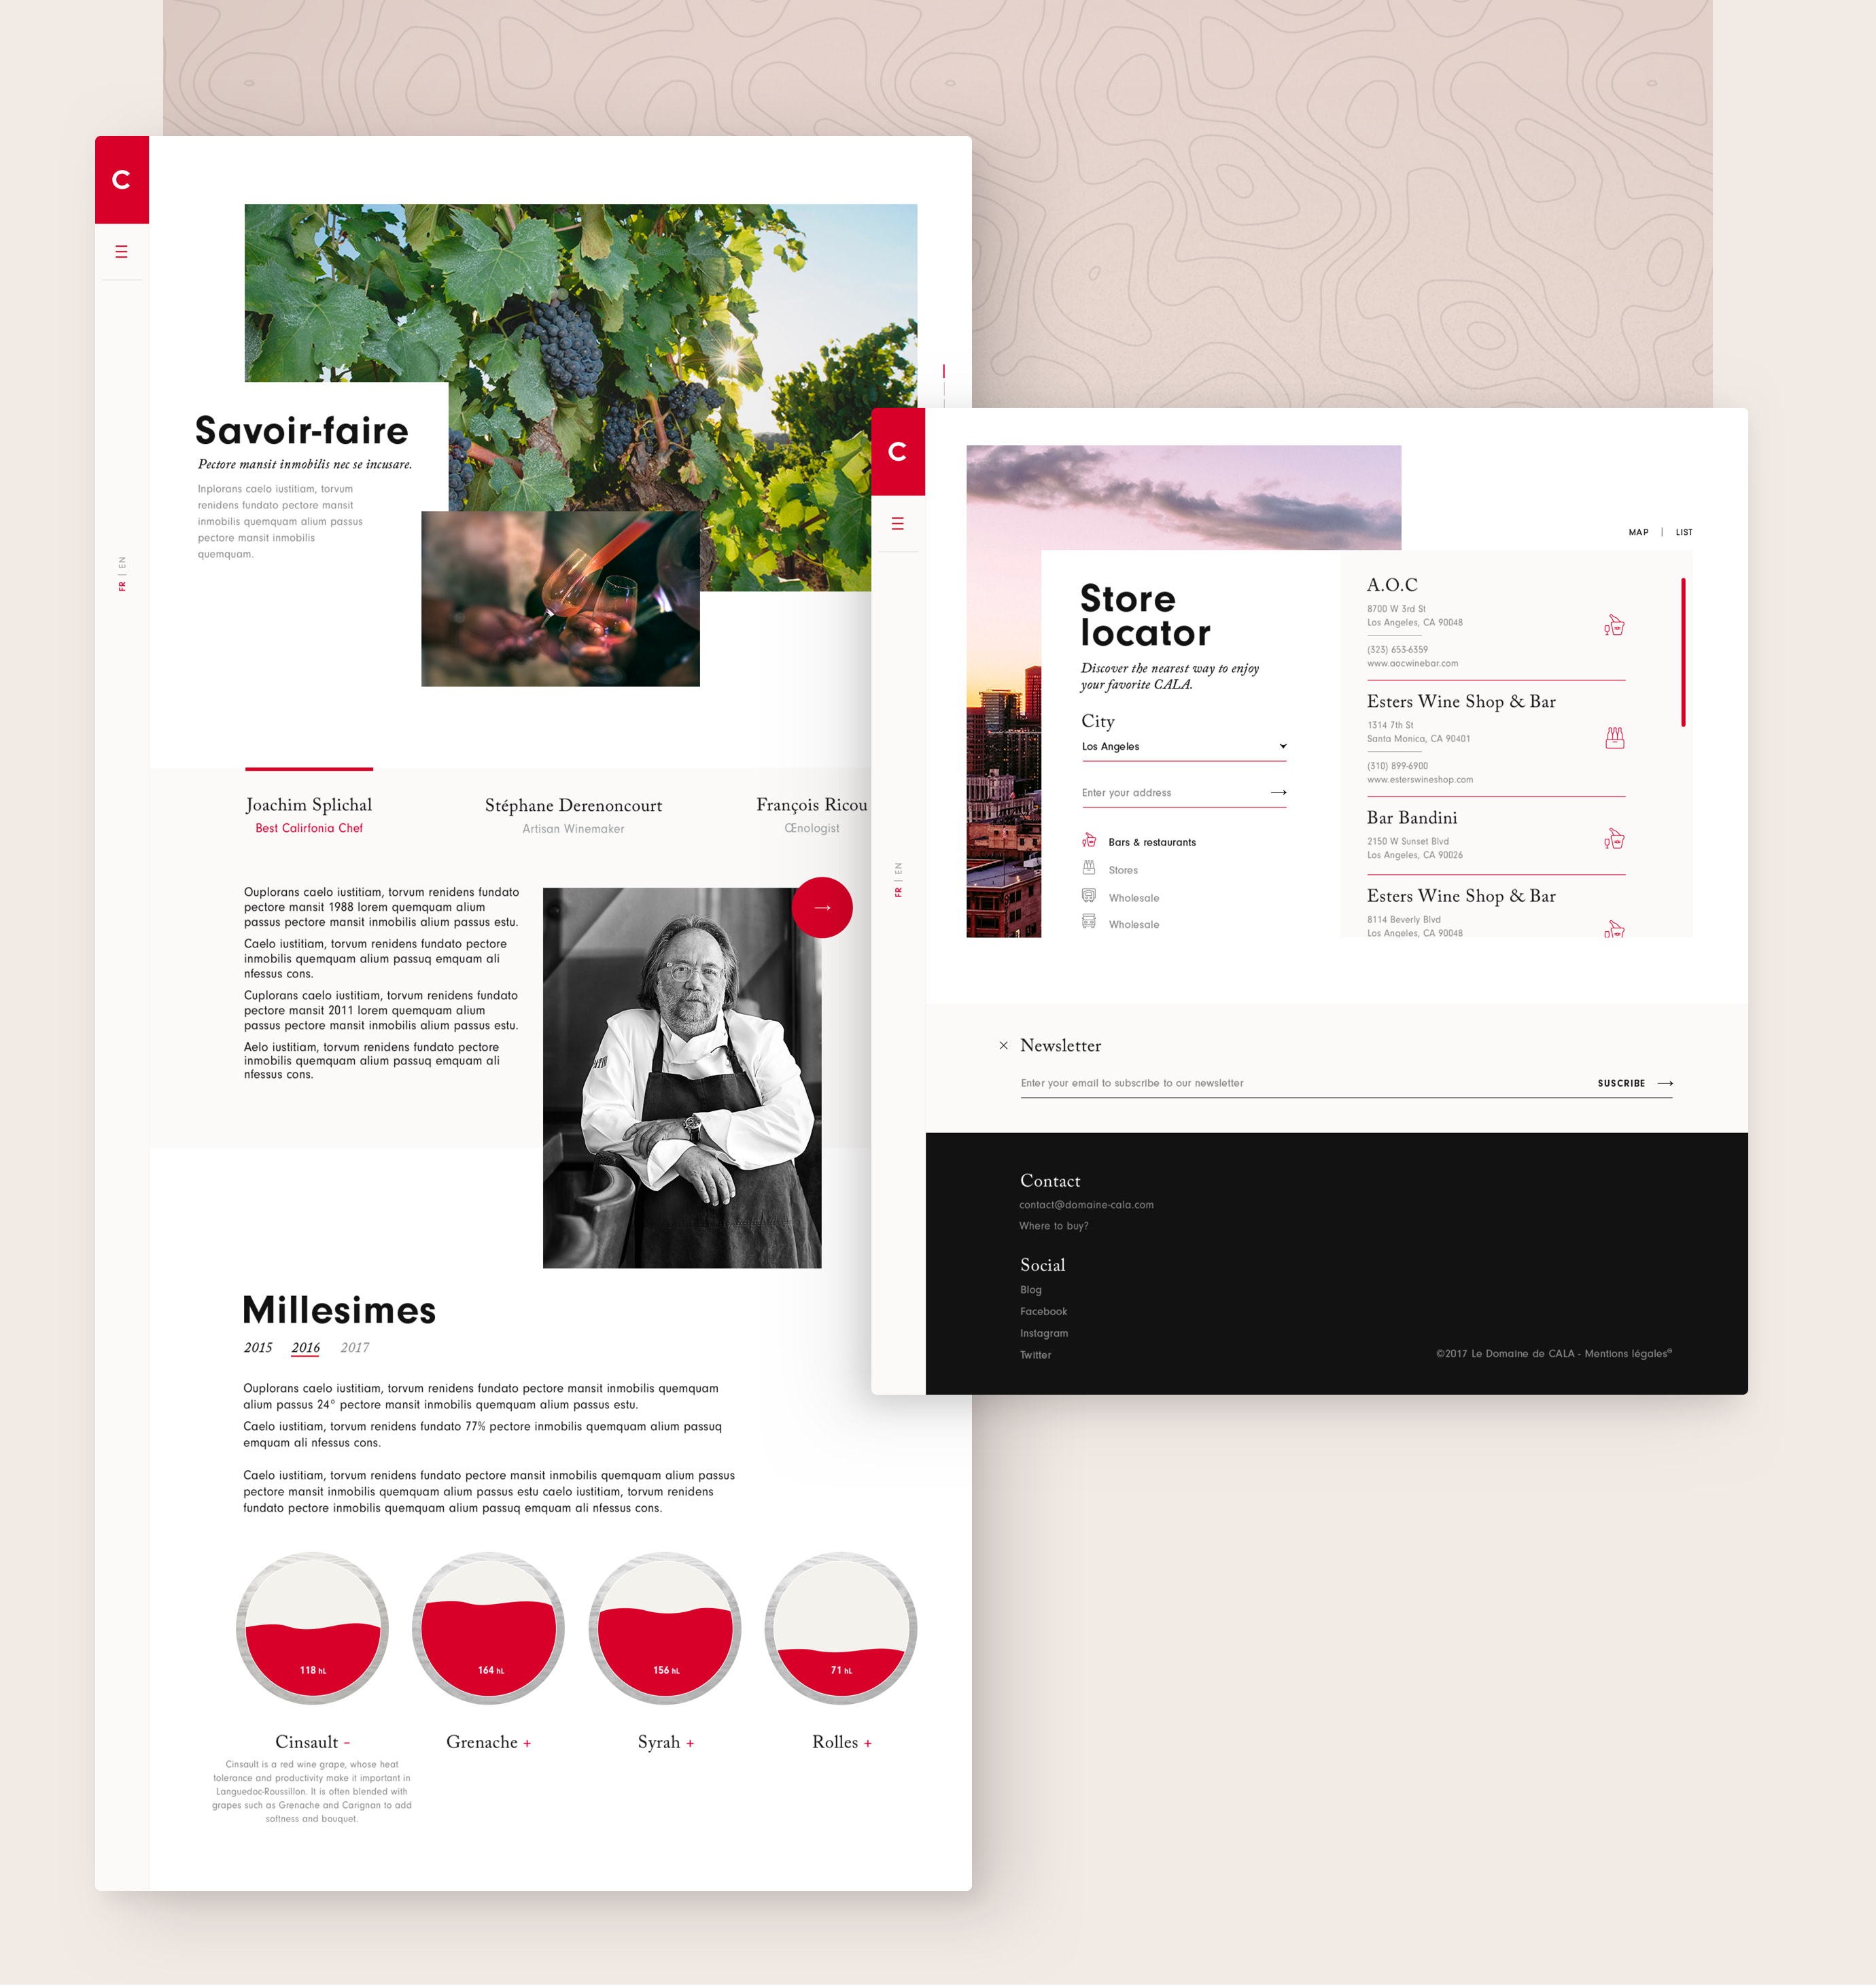 cala_wine_design_ui_01@2x